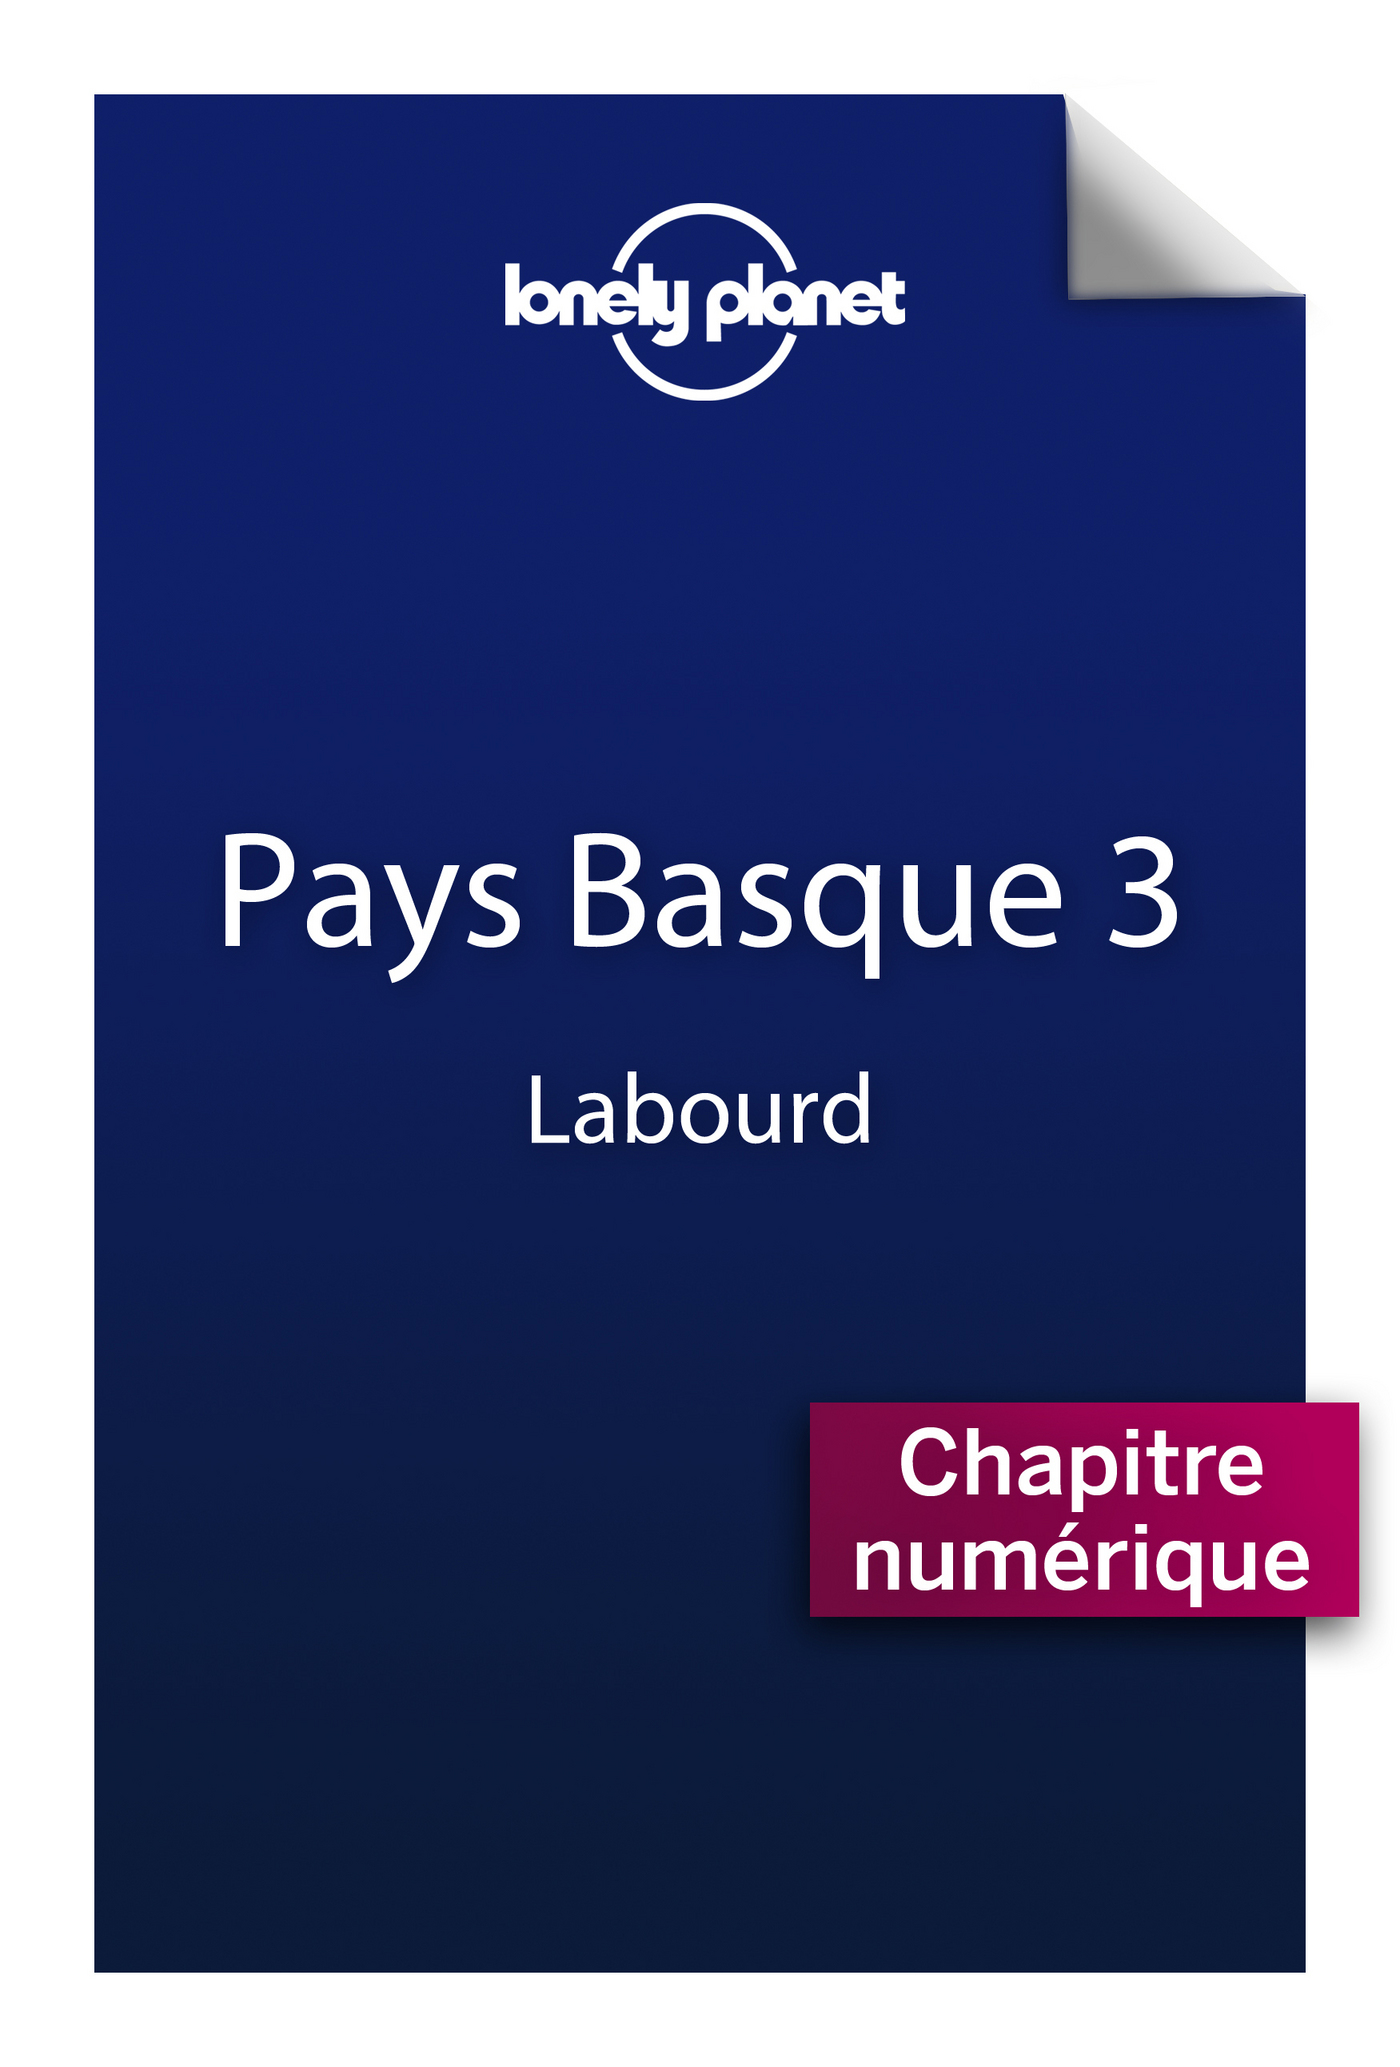 Pays basque 3 - Labourd